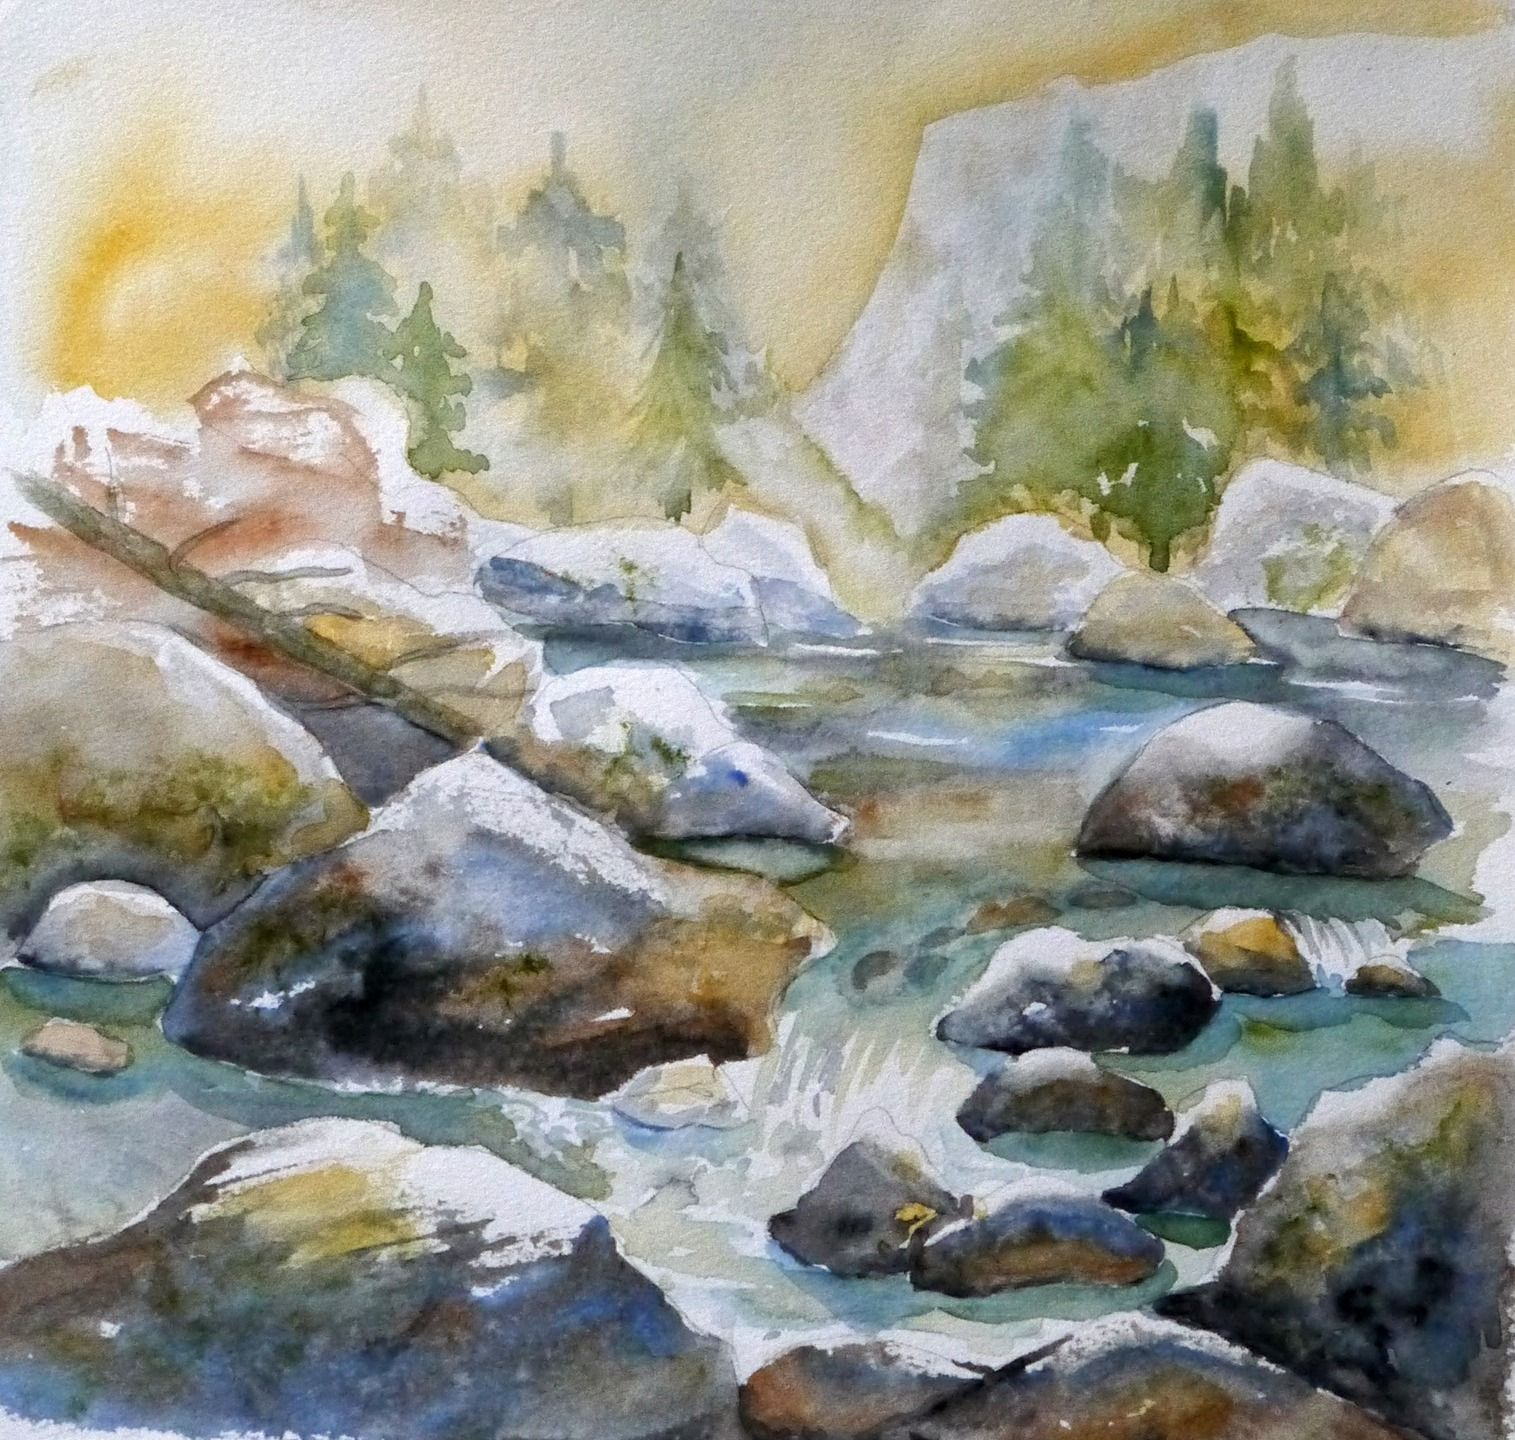 Peinture contemporaine tableau torrent de montagne for Peinture contemporaine